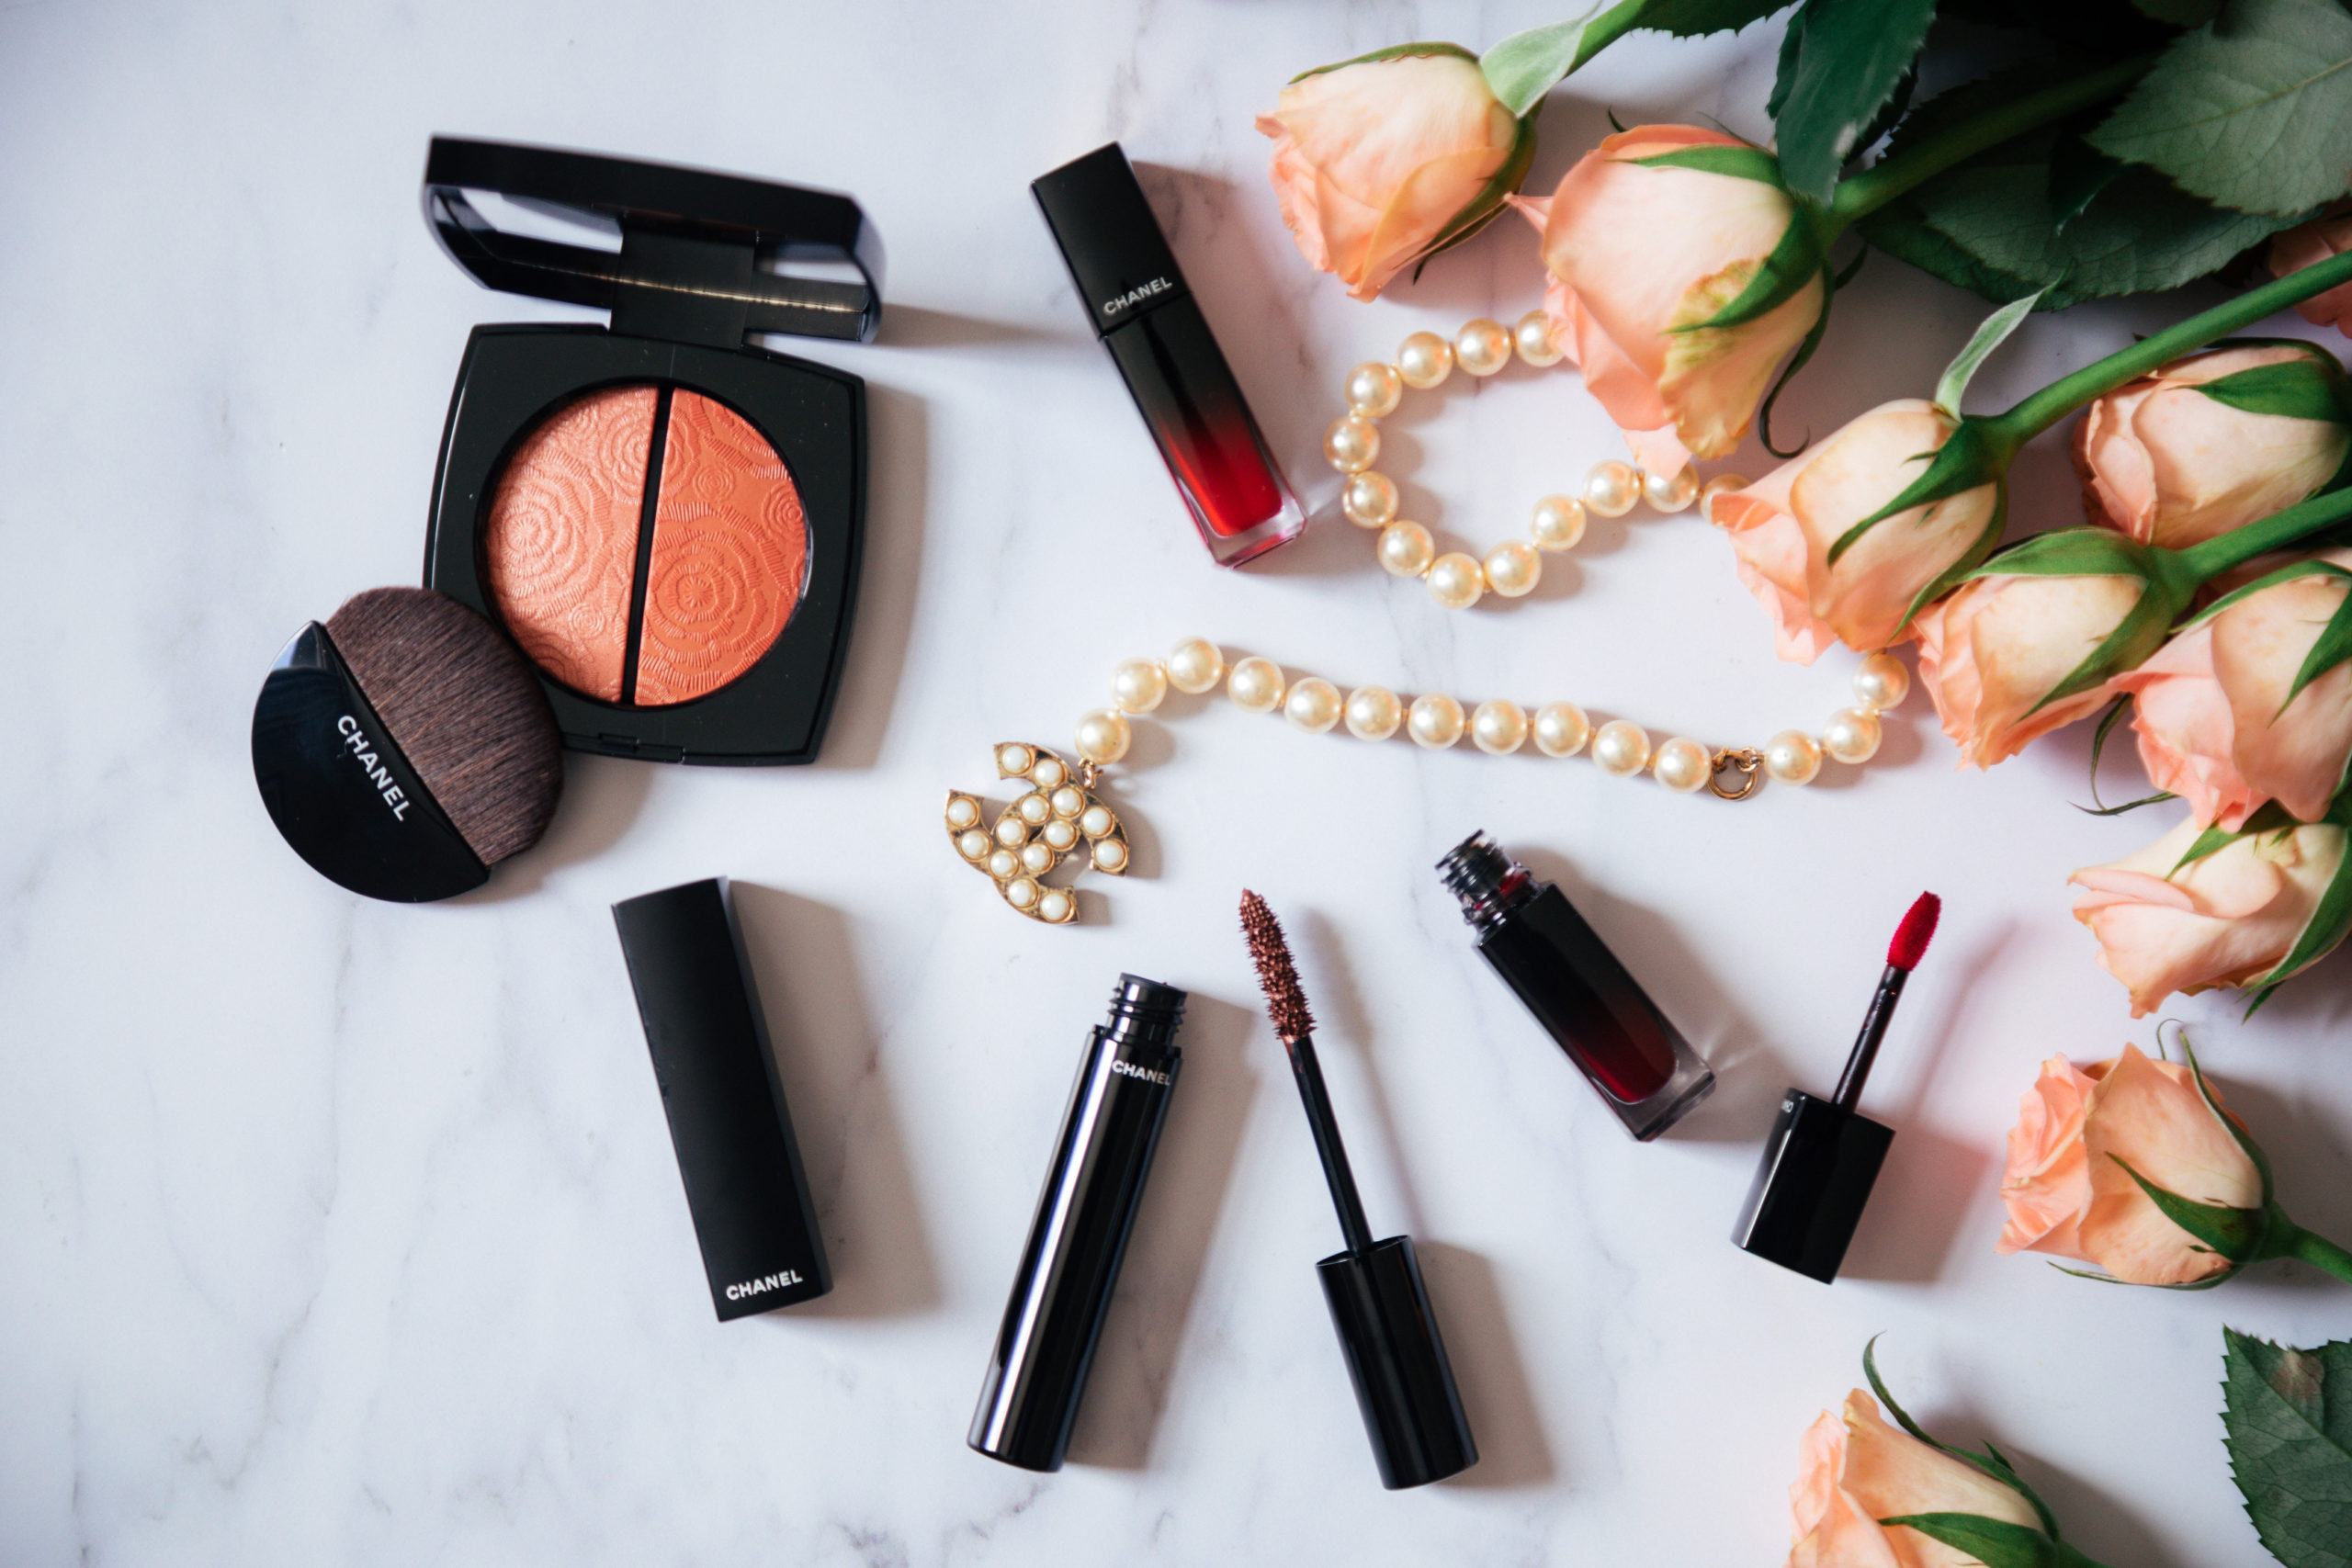 Chanel SS21 Makeup Collection